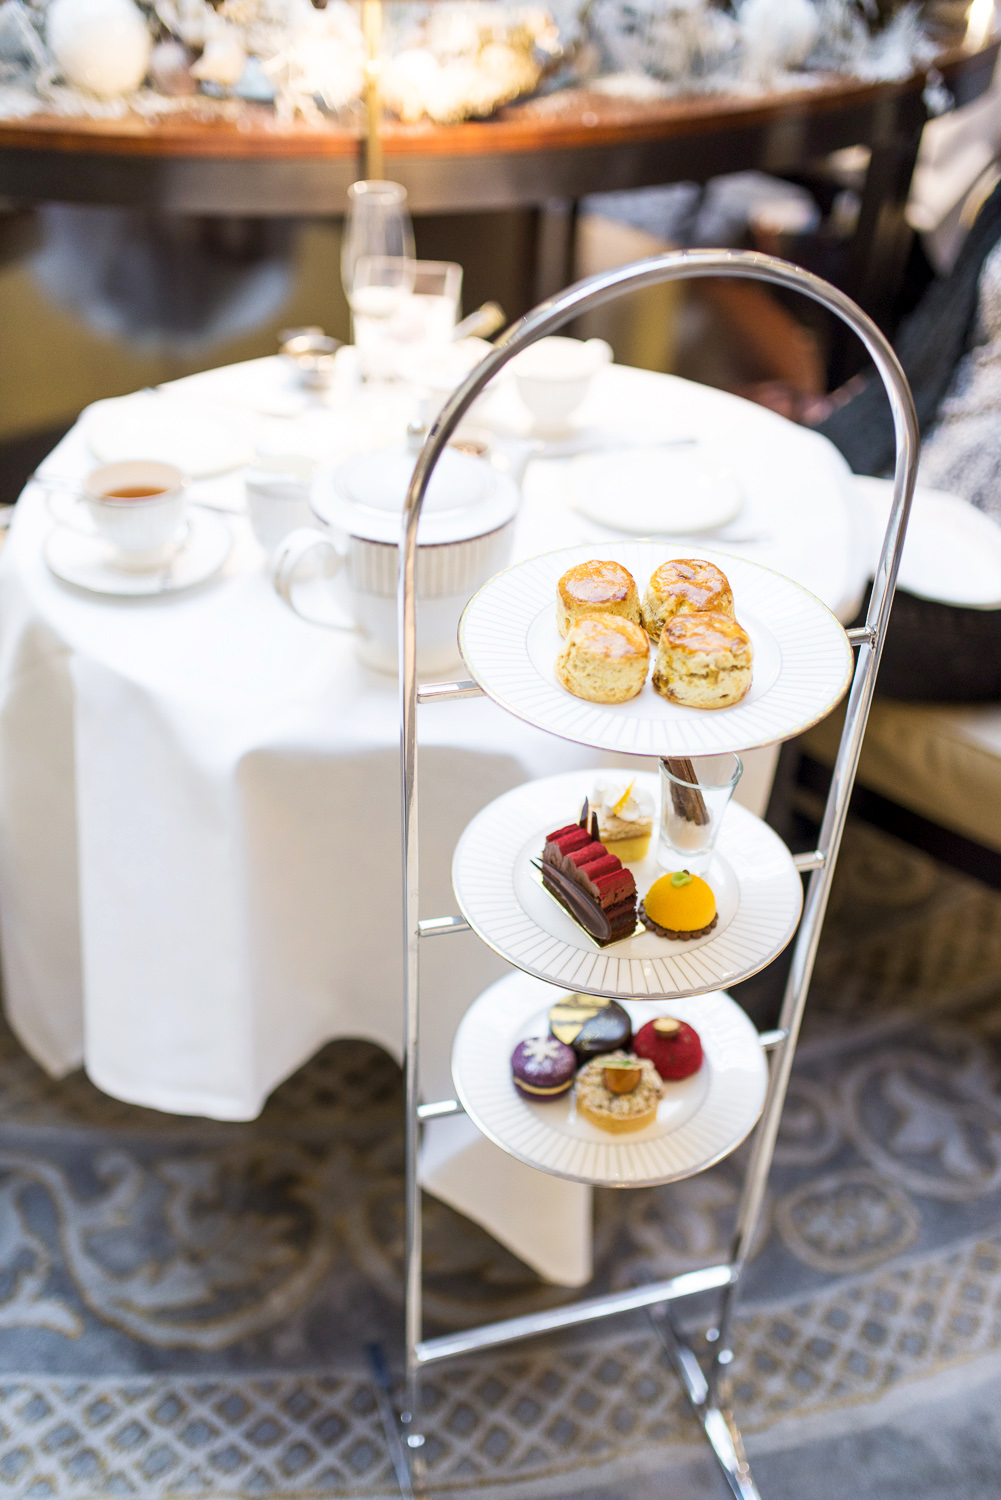 Afternoon-Tea-Corinthia-London-9